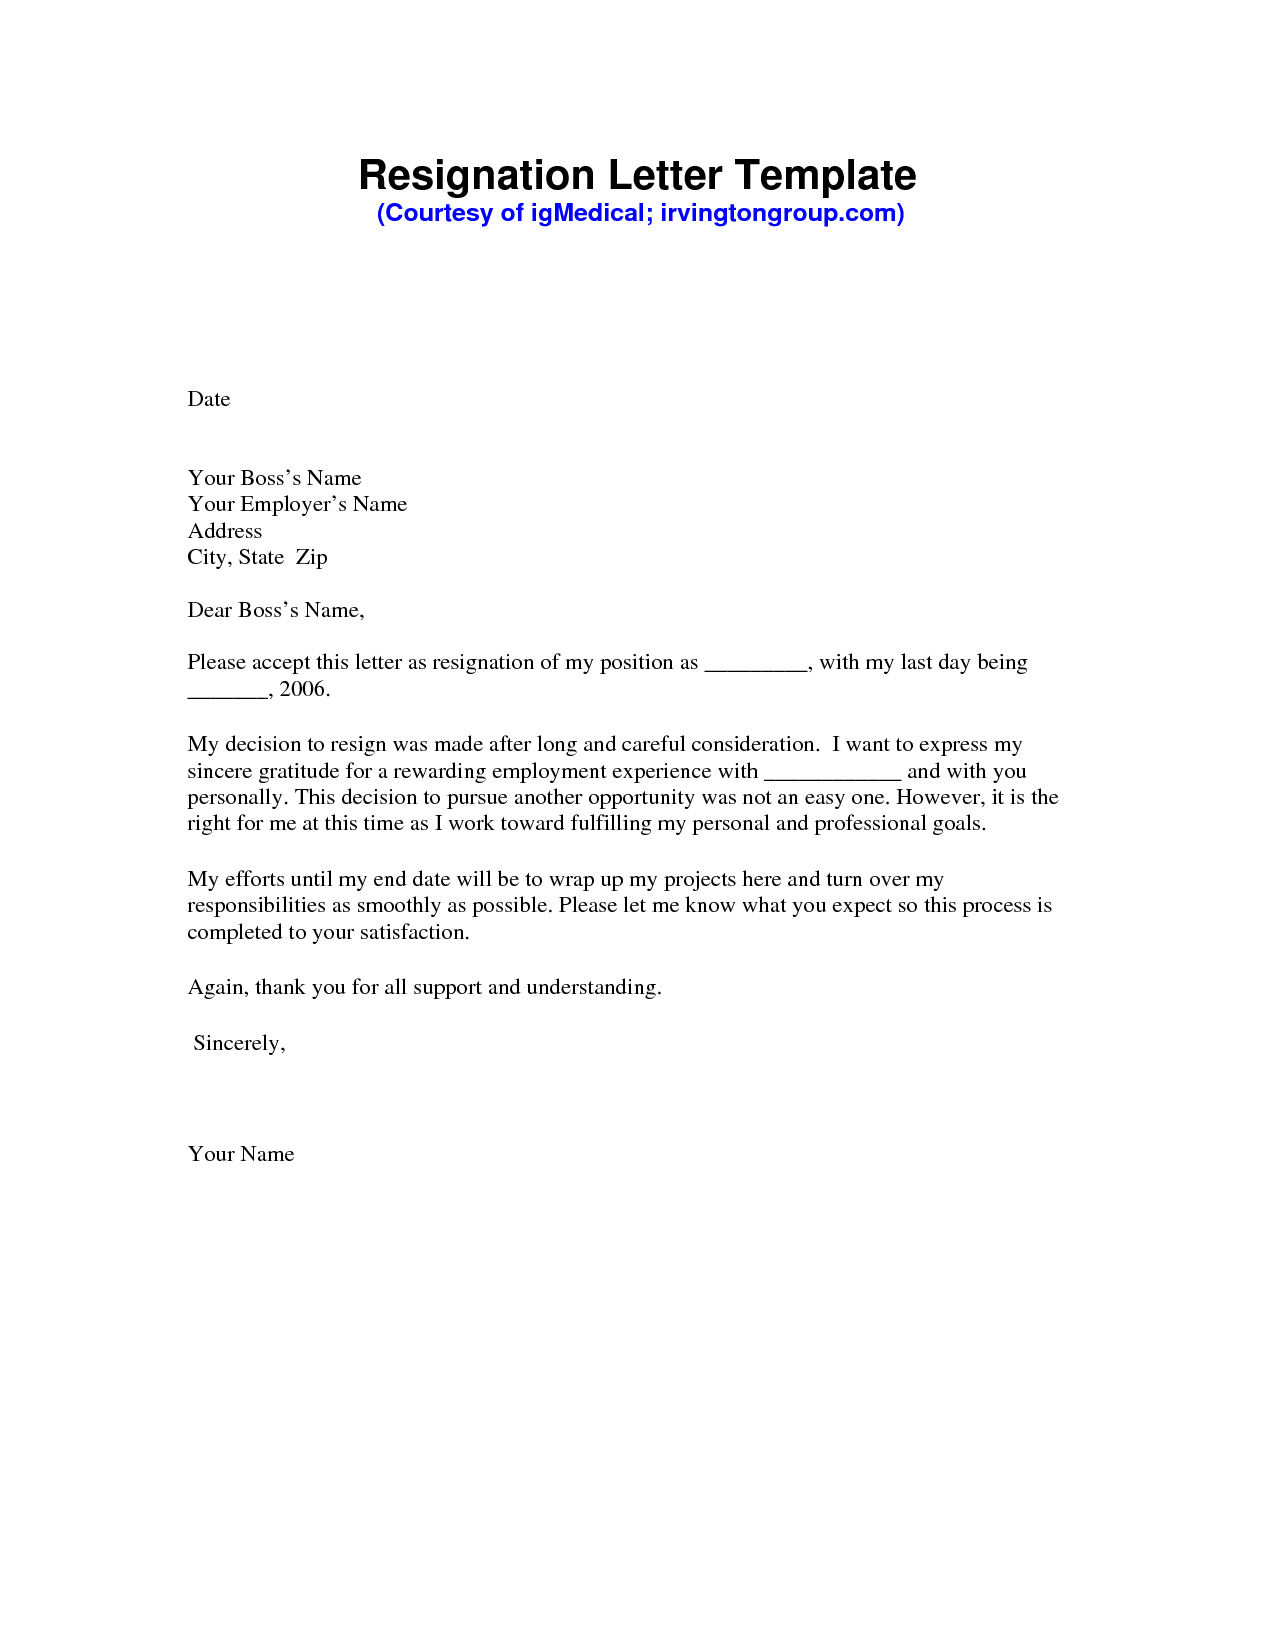 Work Resignation Letter Template - Resignation Letter Sample Pdf Resignation Letter